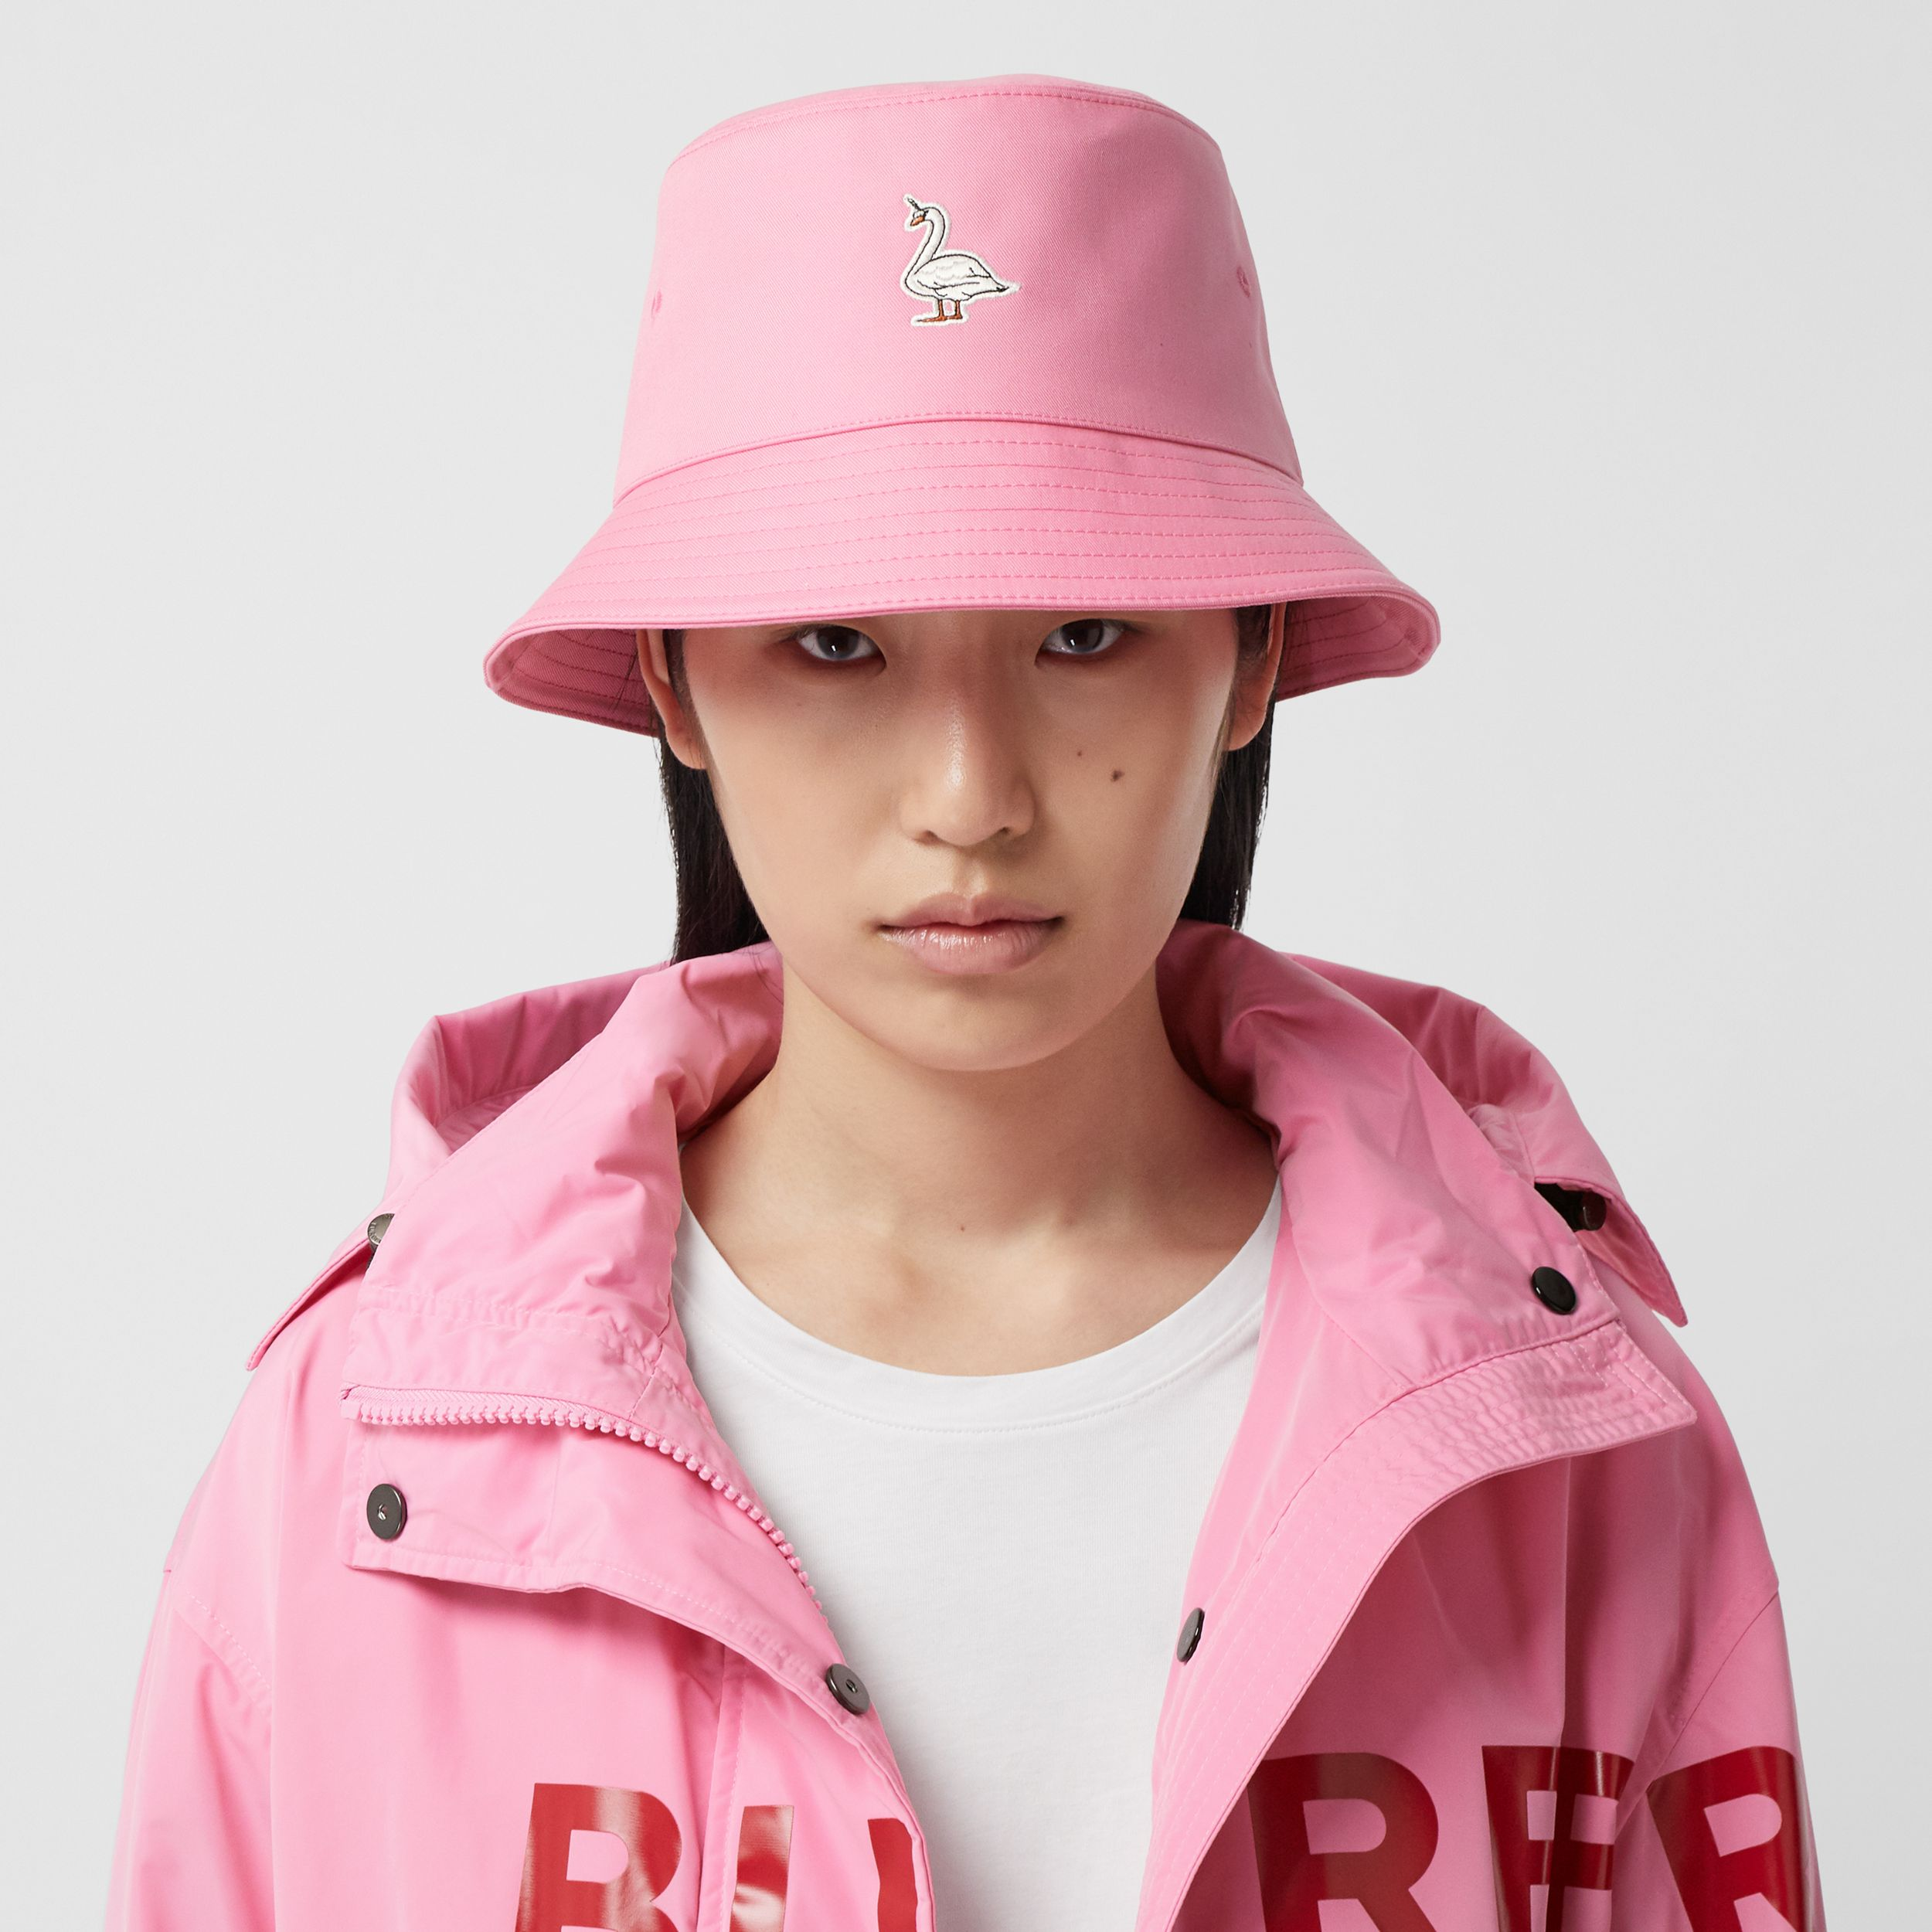 Swan Appliqué Cotton Twill Bucket Hat in Bubblegum Pink | Burberry - 3